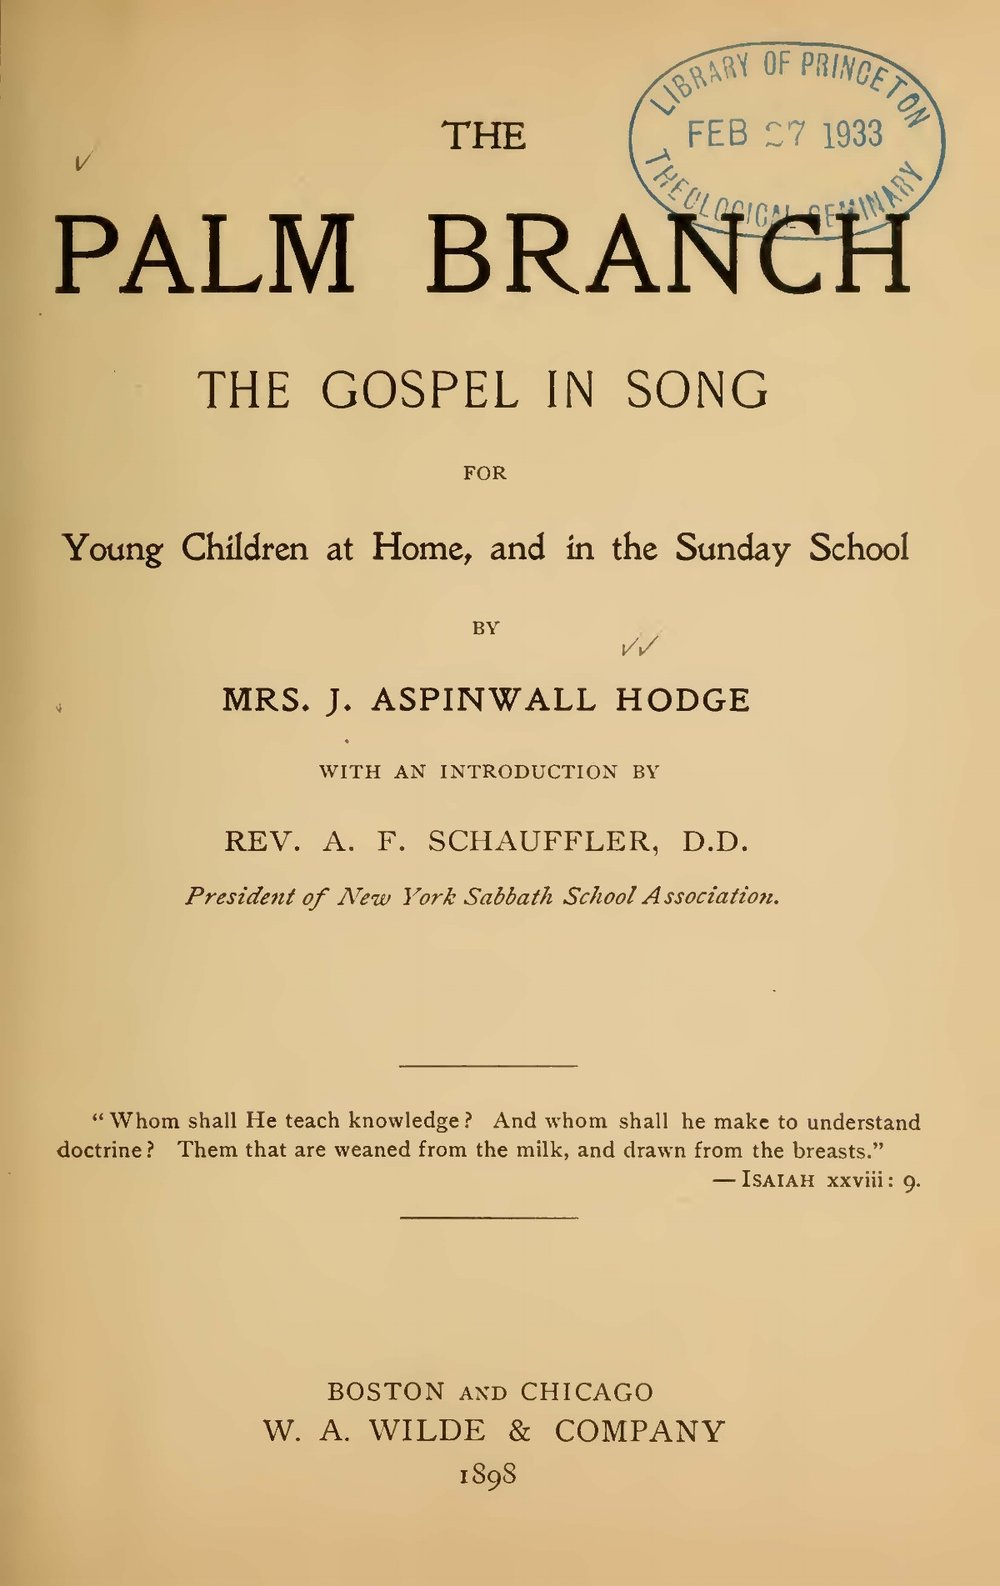 Hodge, Charlotte, The Palm Branch The Gospel in Song for Young Children at Home Title Page.jpg